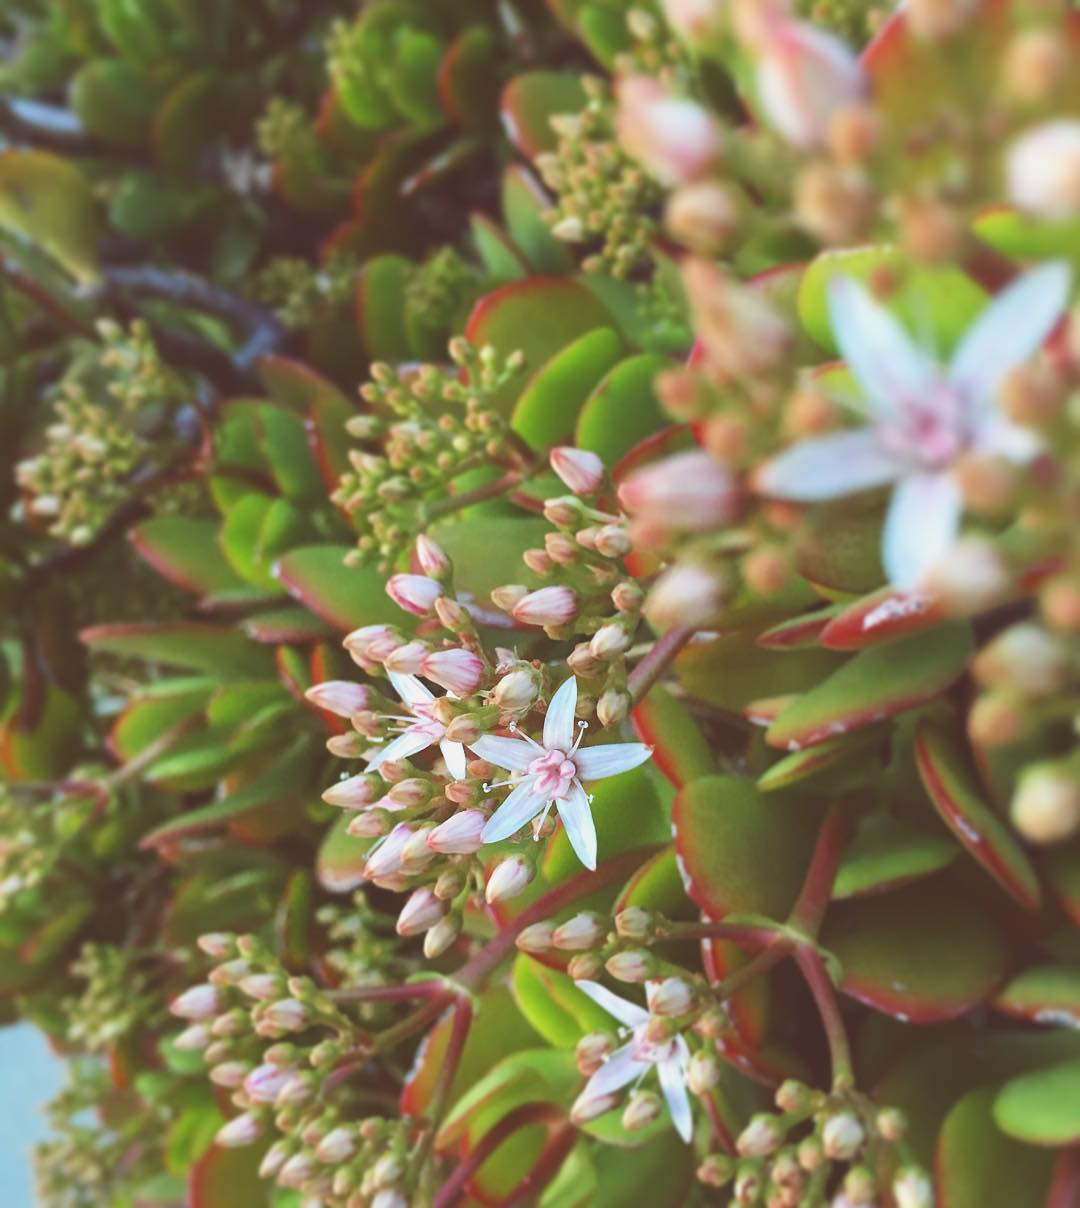 just-noticed-our-sweet-little-jade-bloomed-tiny-white-flowers-ahoy-succulents-succulentgarden-3366_23793033059_o.jpg